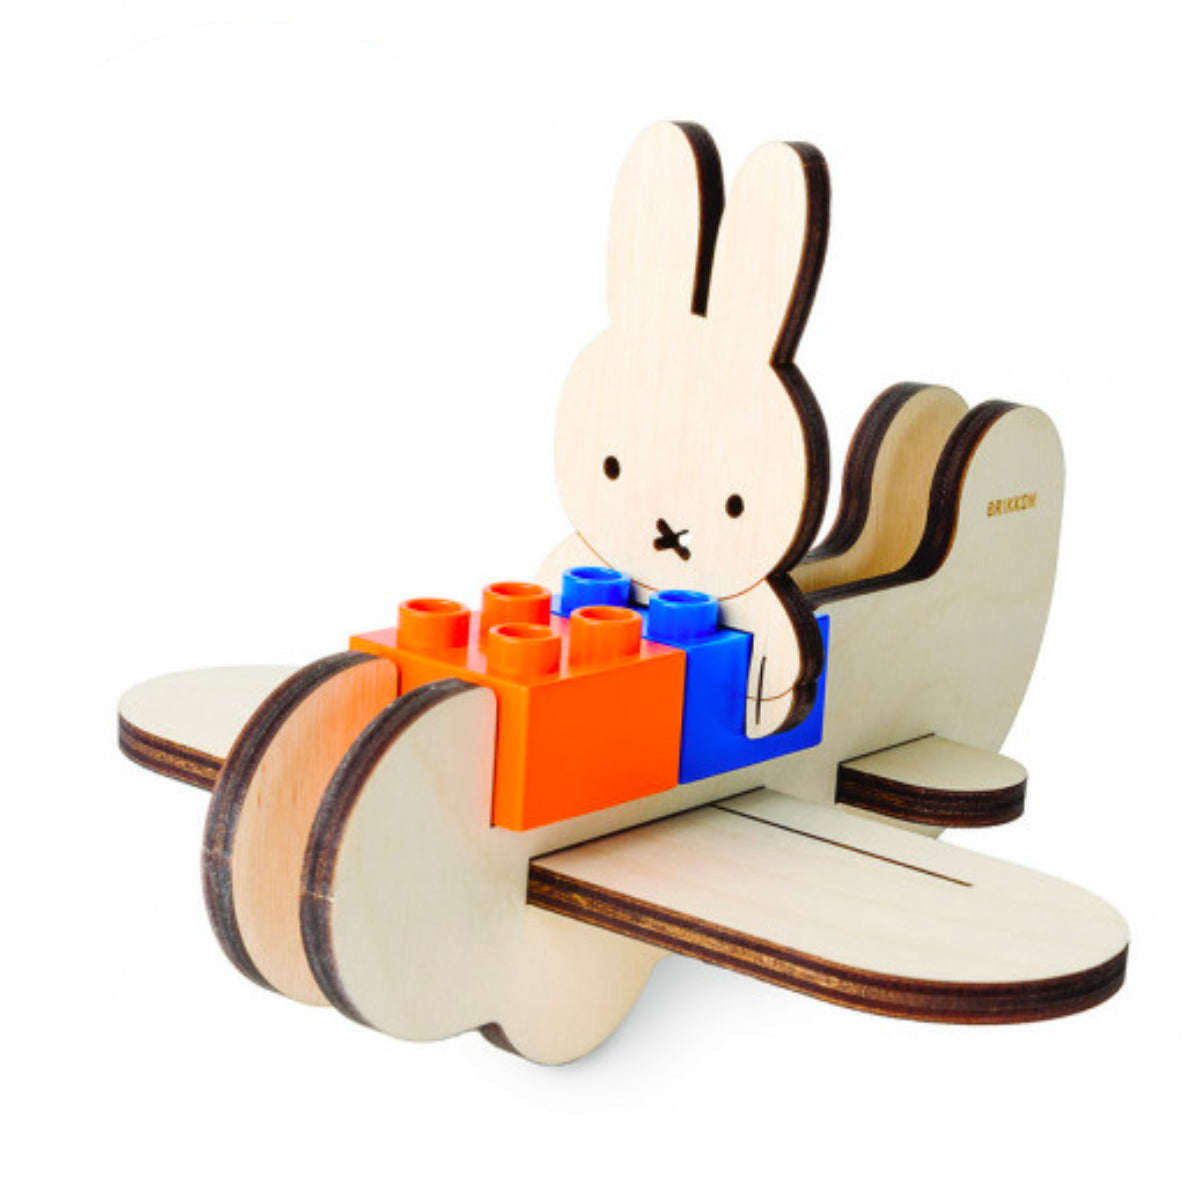 Biobuddi Miffy Plane brick toy